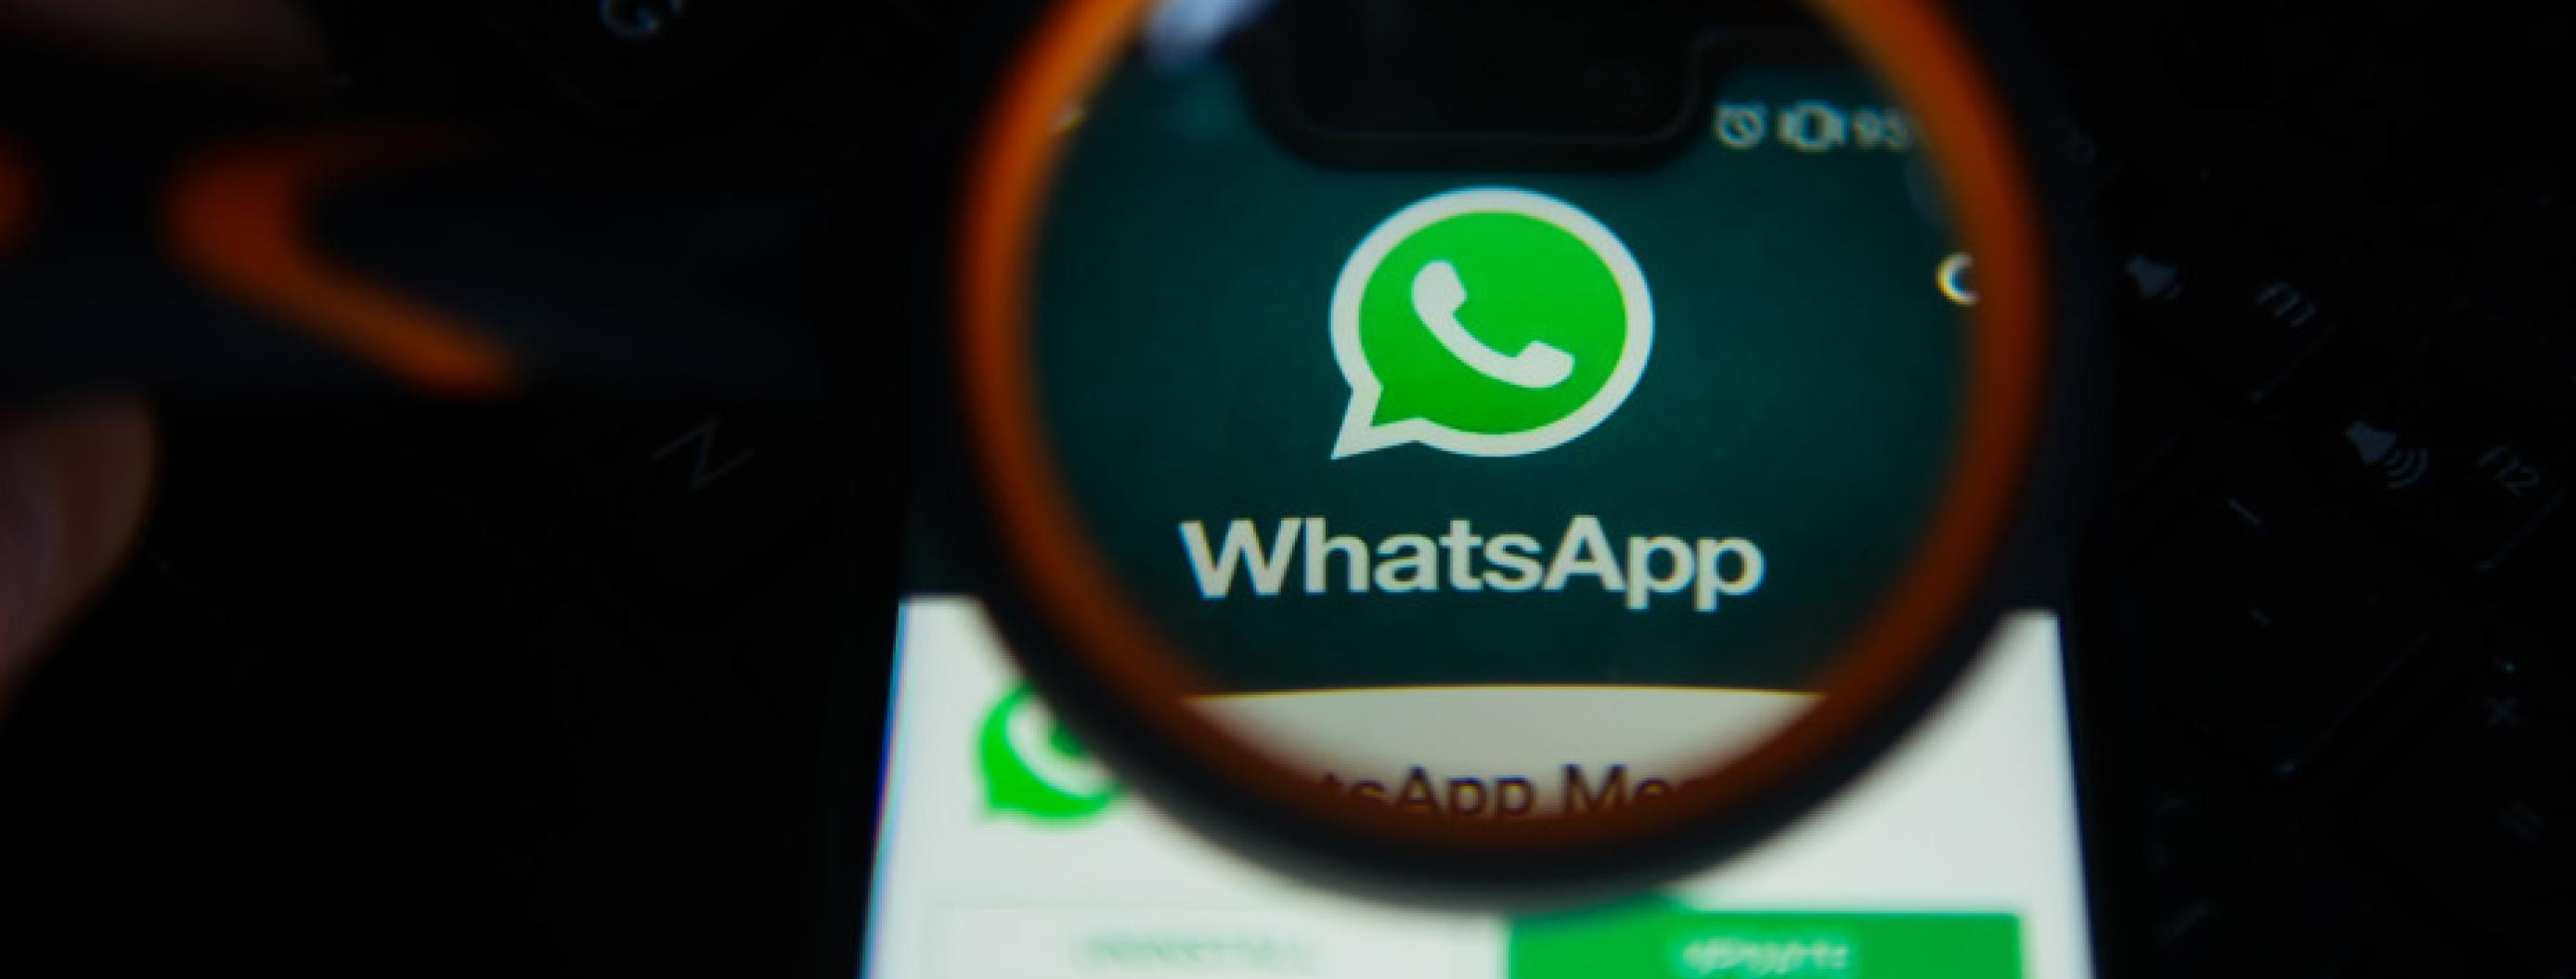 Users Can Now Control Who Adds Them to Groups in WhatsApp